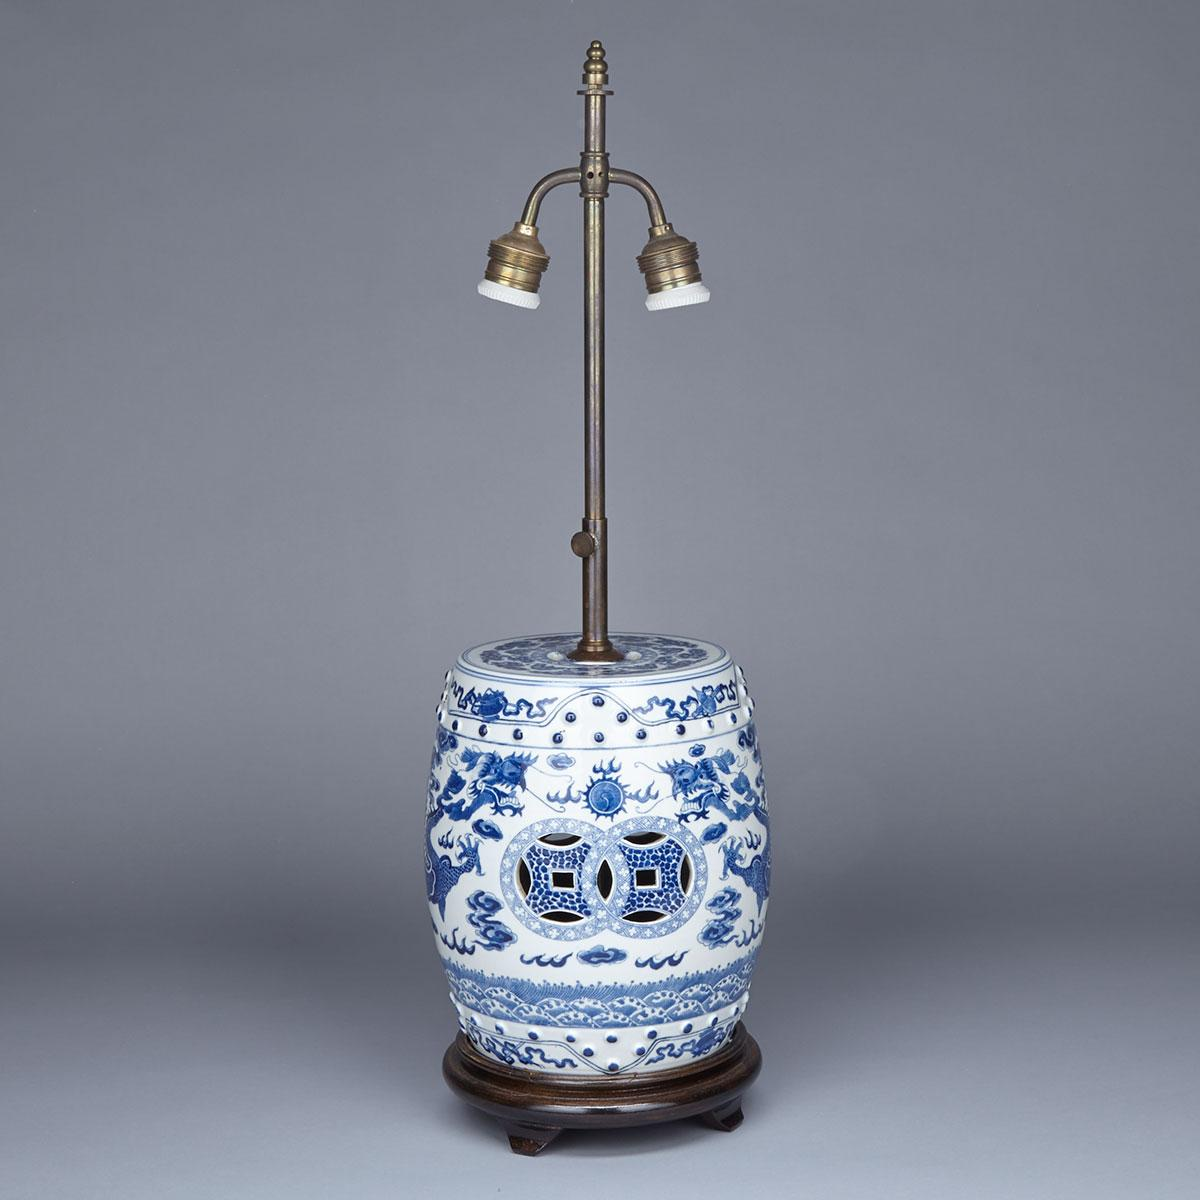 Blue and White Miniature Drum Stool, Late 19th Century